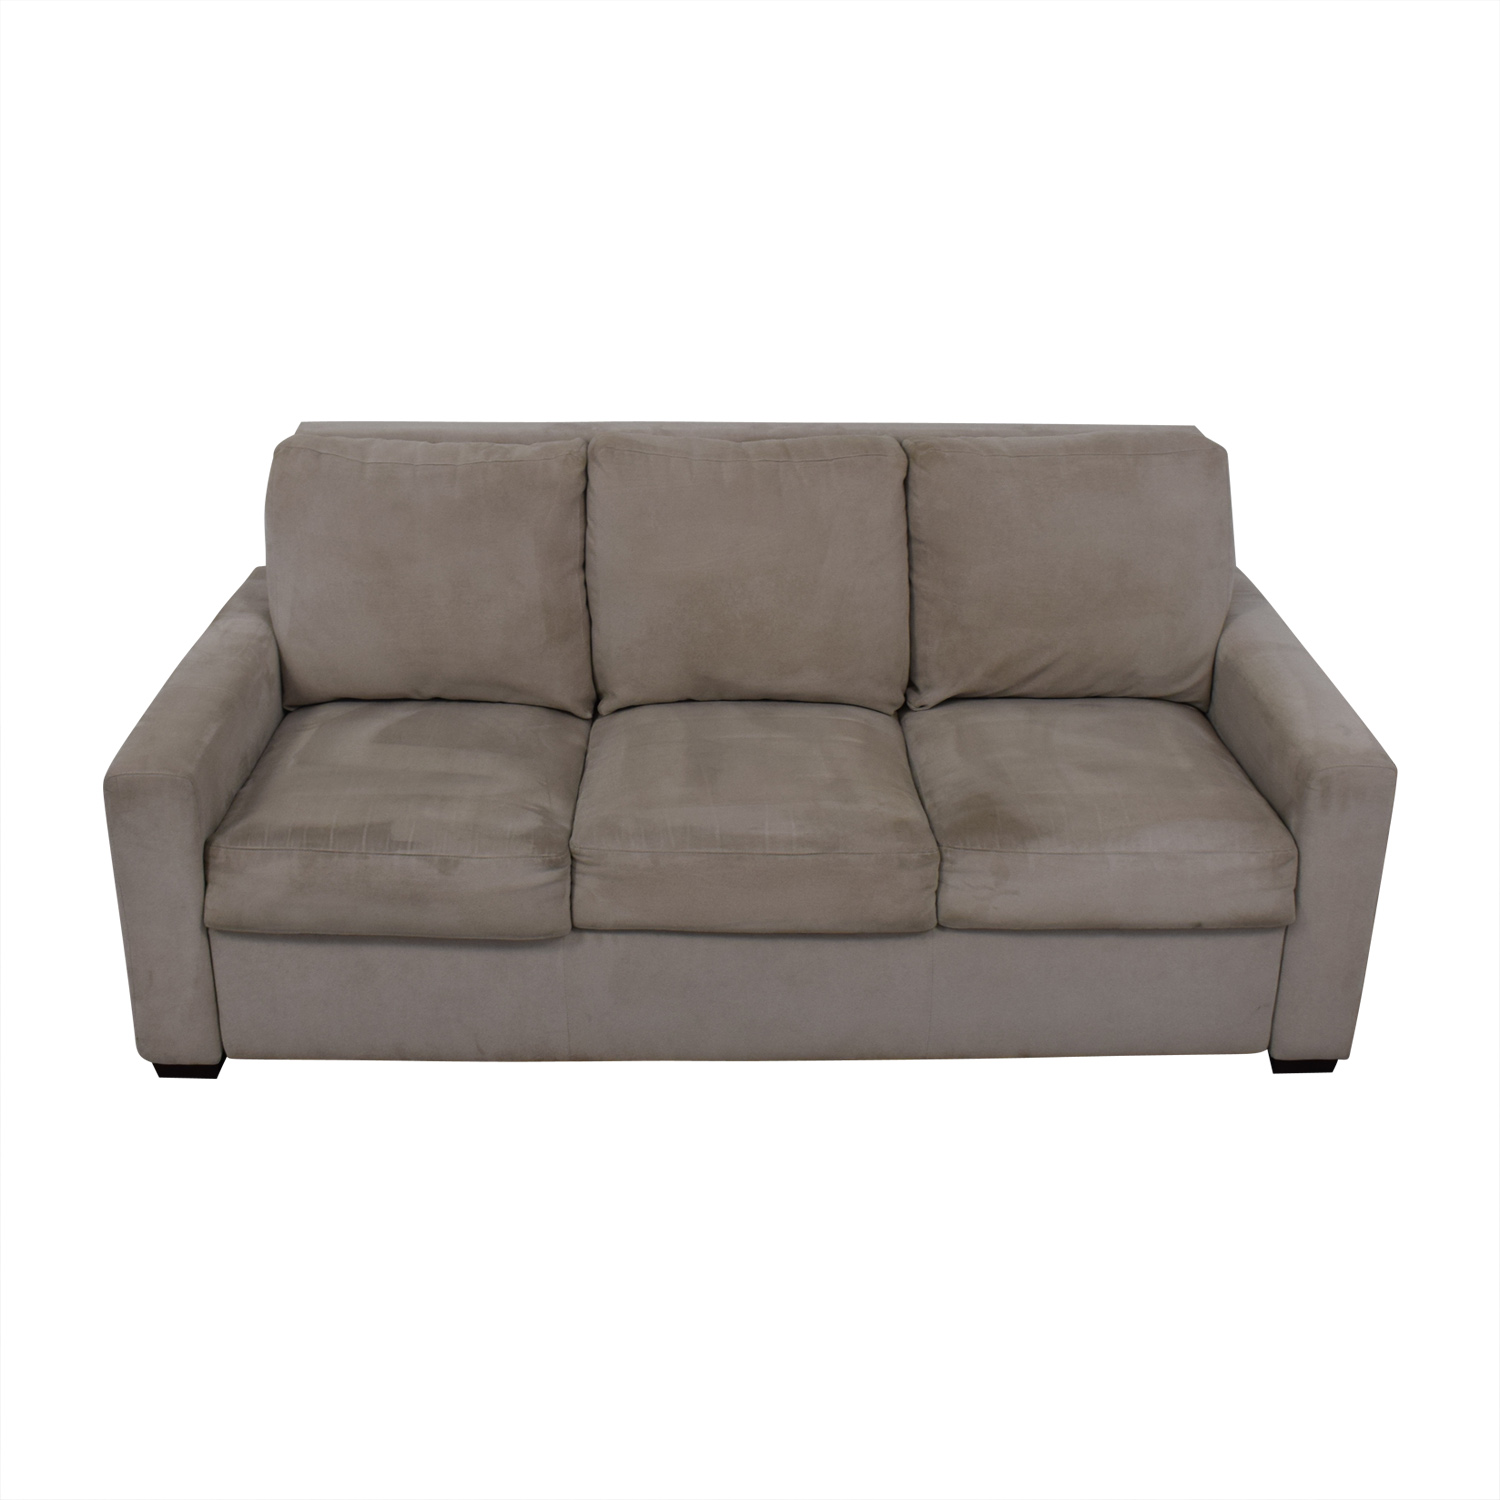 shop Room & Board Three Cushion Sofa Room & Board Classic Sofas